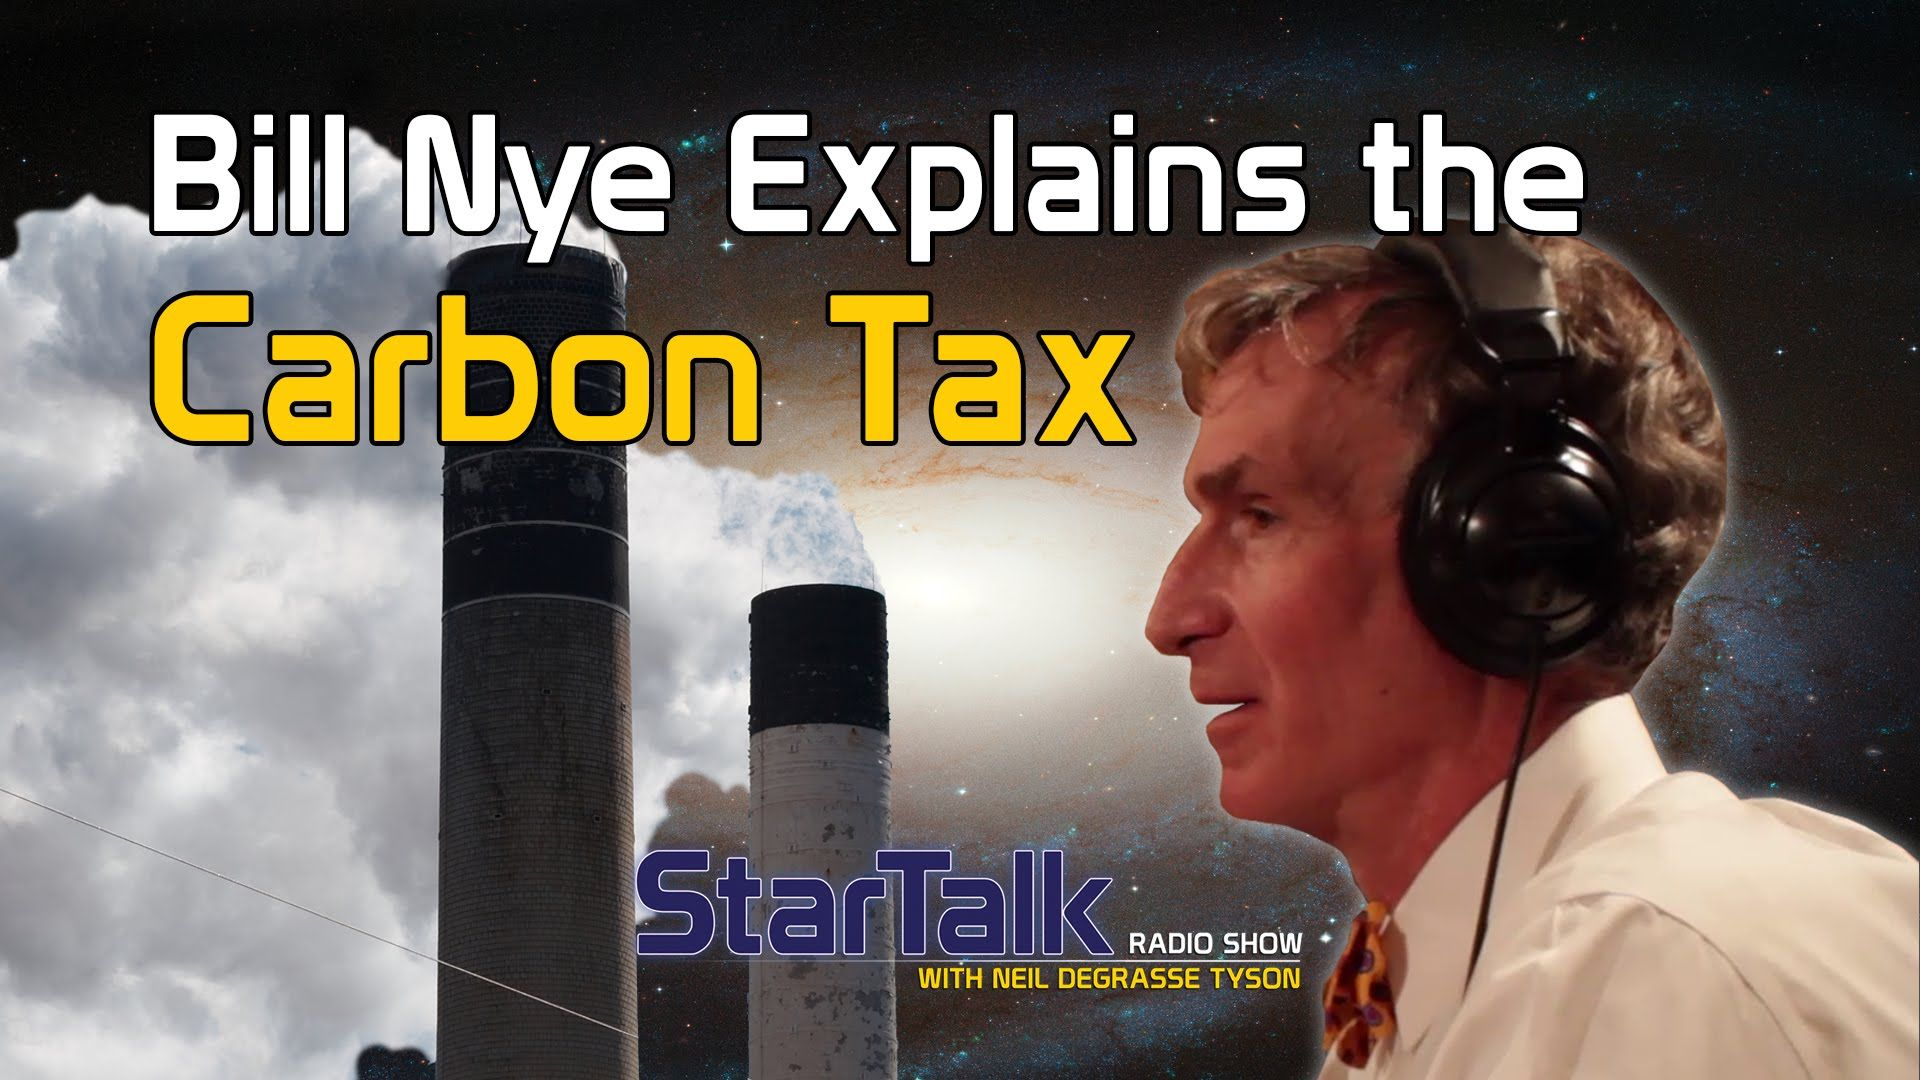 Why Is Bill Nye Optimistic About Addressing Climate Change